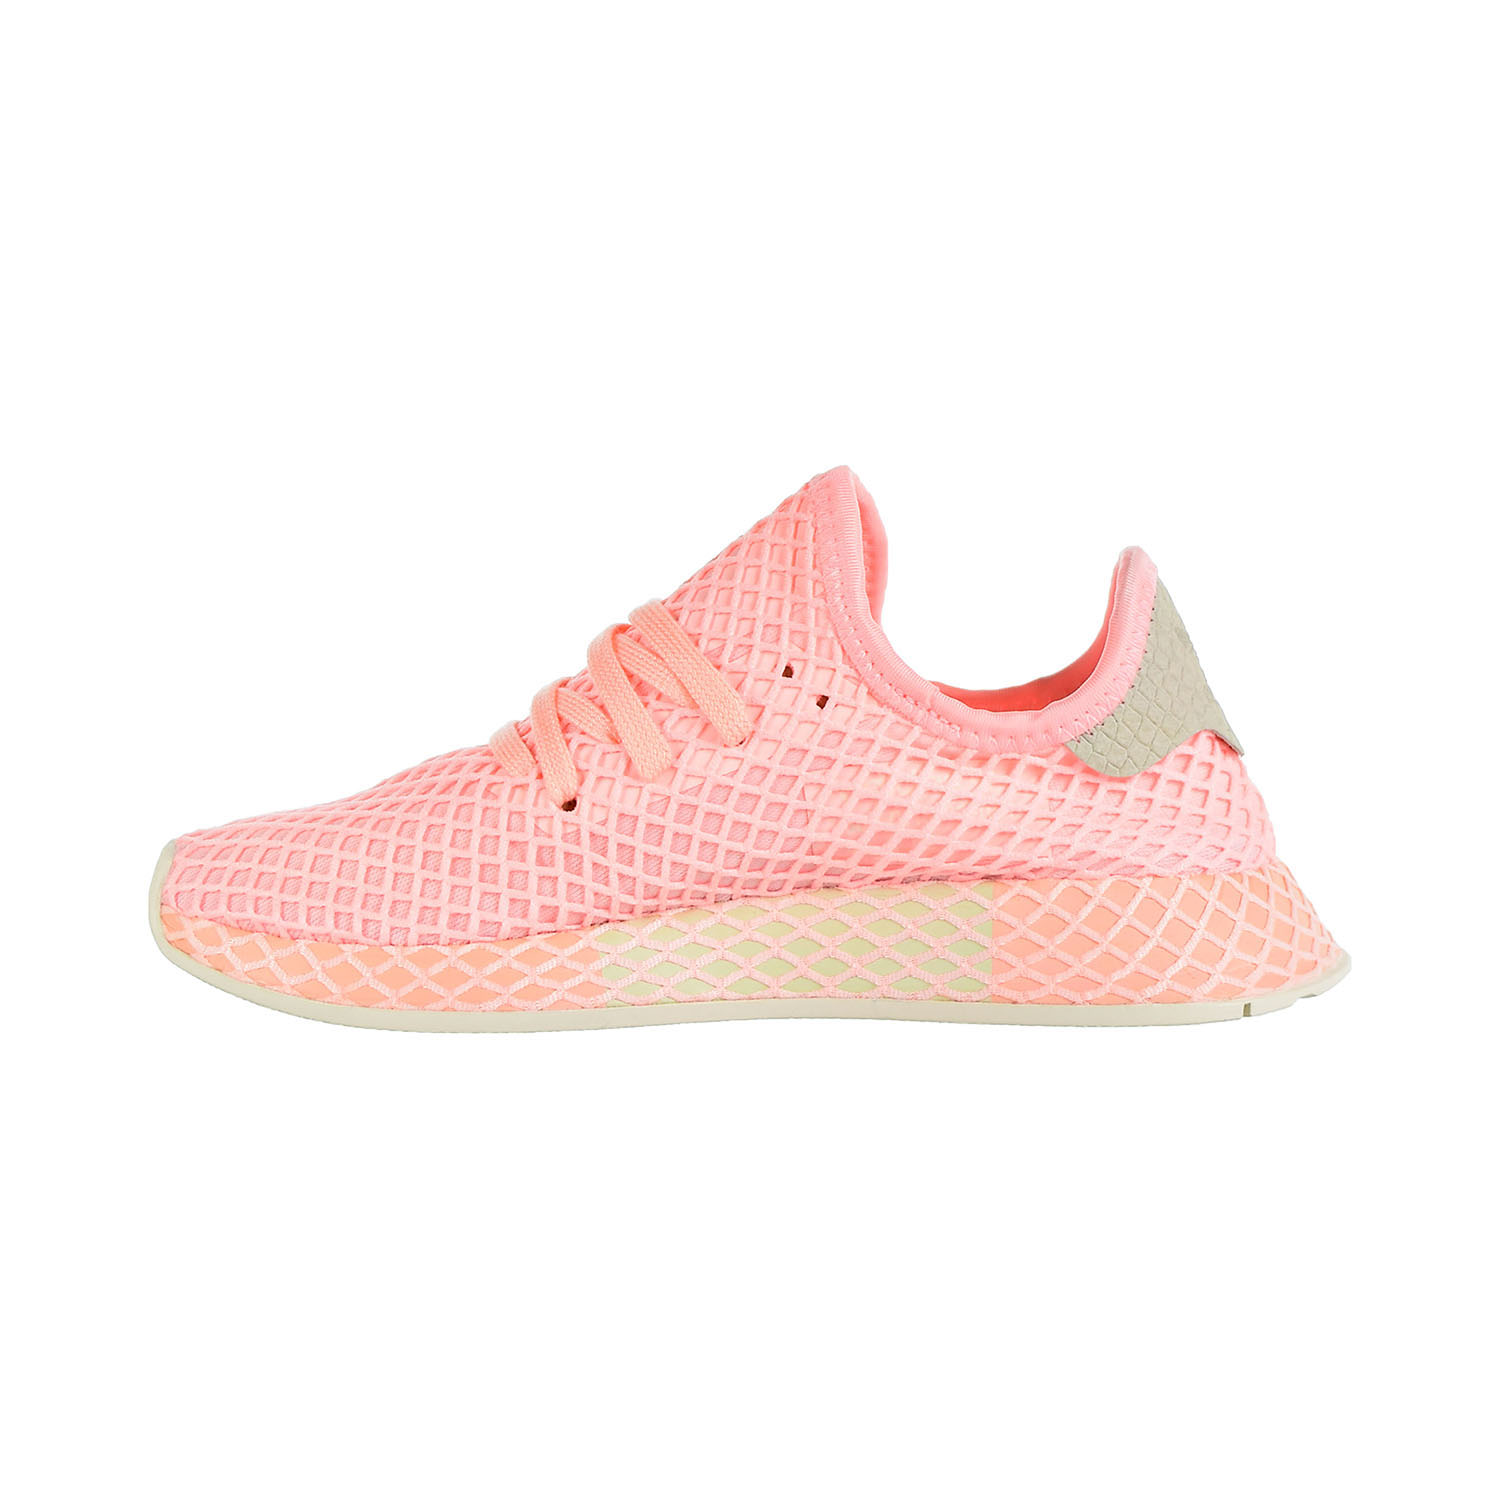 3e6ce5bbd Adidas Deerupt Originals Women s Shoes Clear Orange Off White B41727 ...